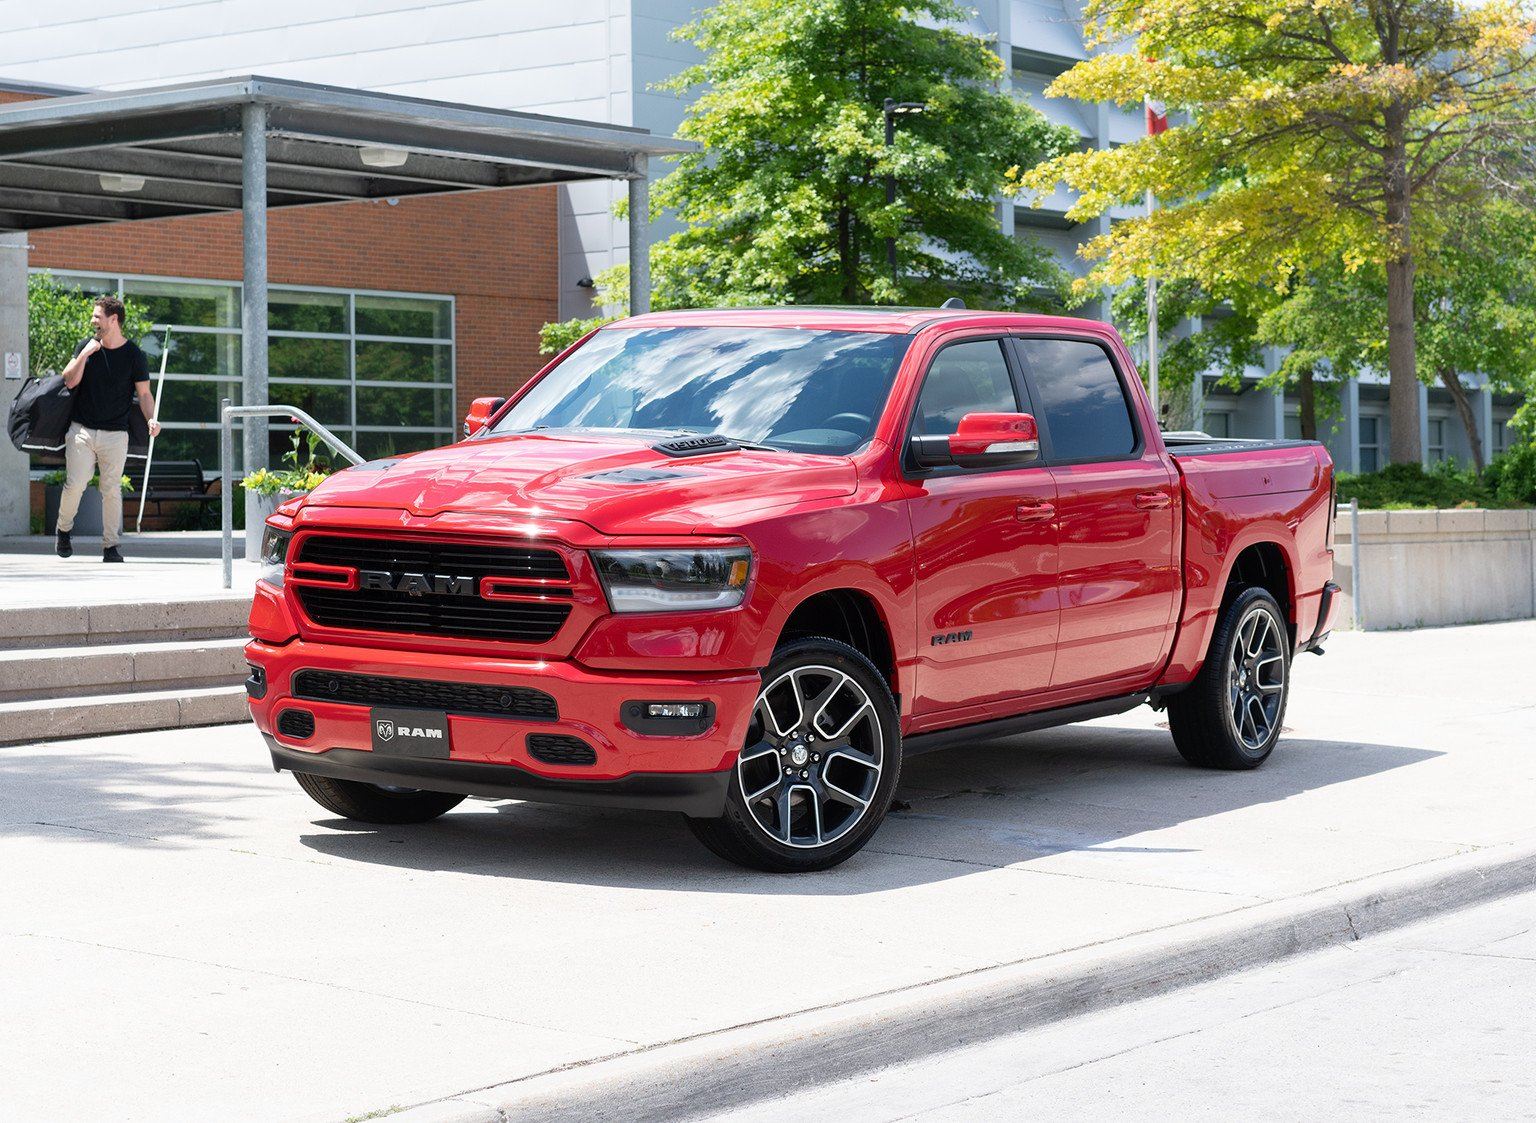 2021-ram-sport-mosaic-canadian-red-parked-outside-building